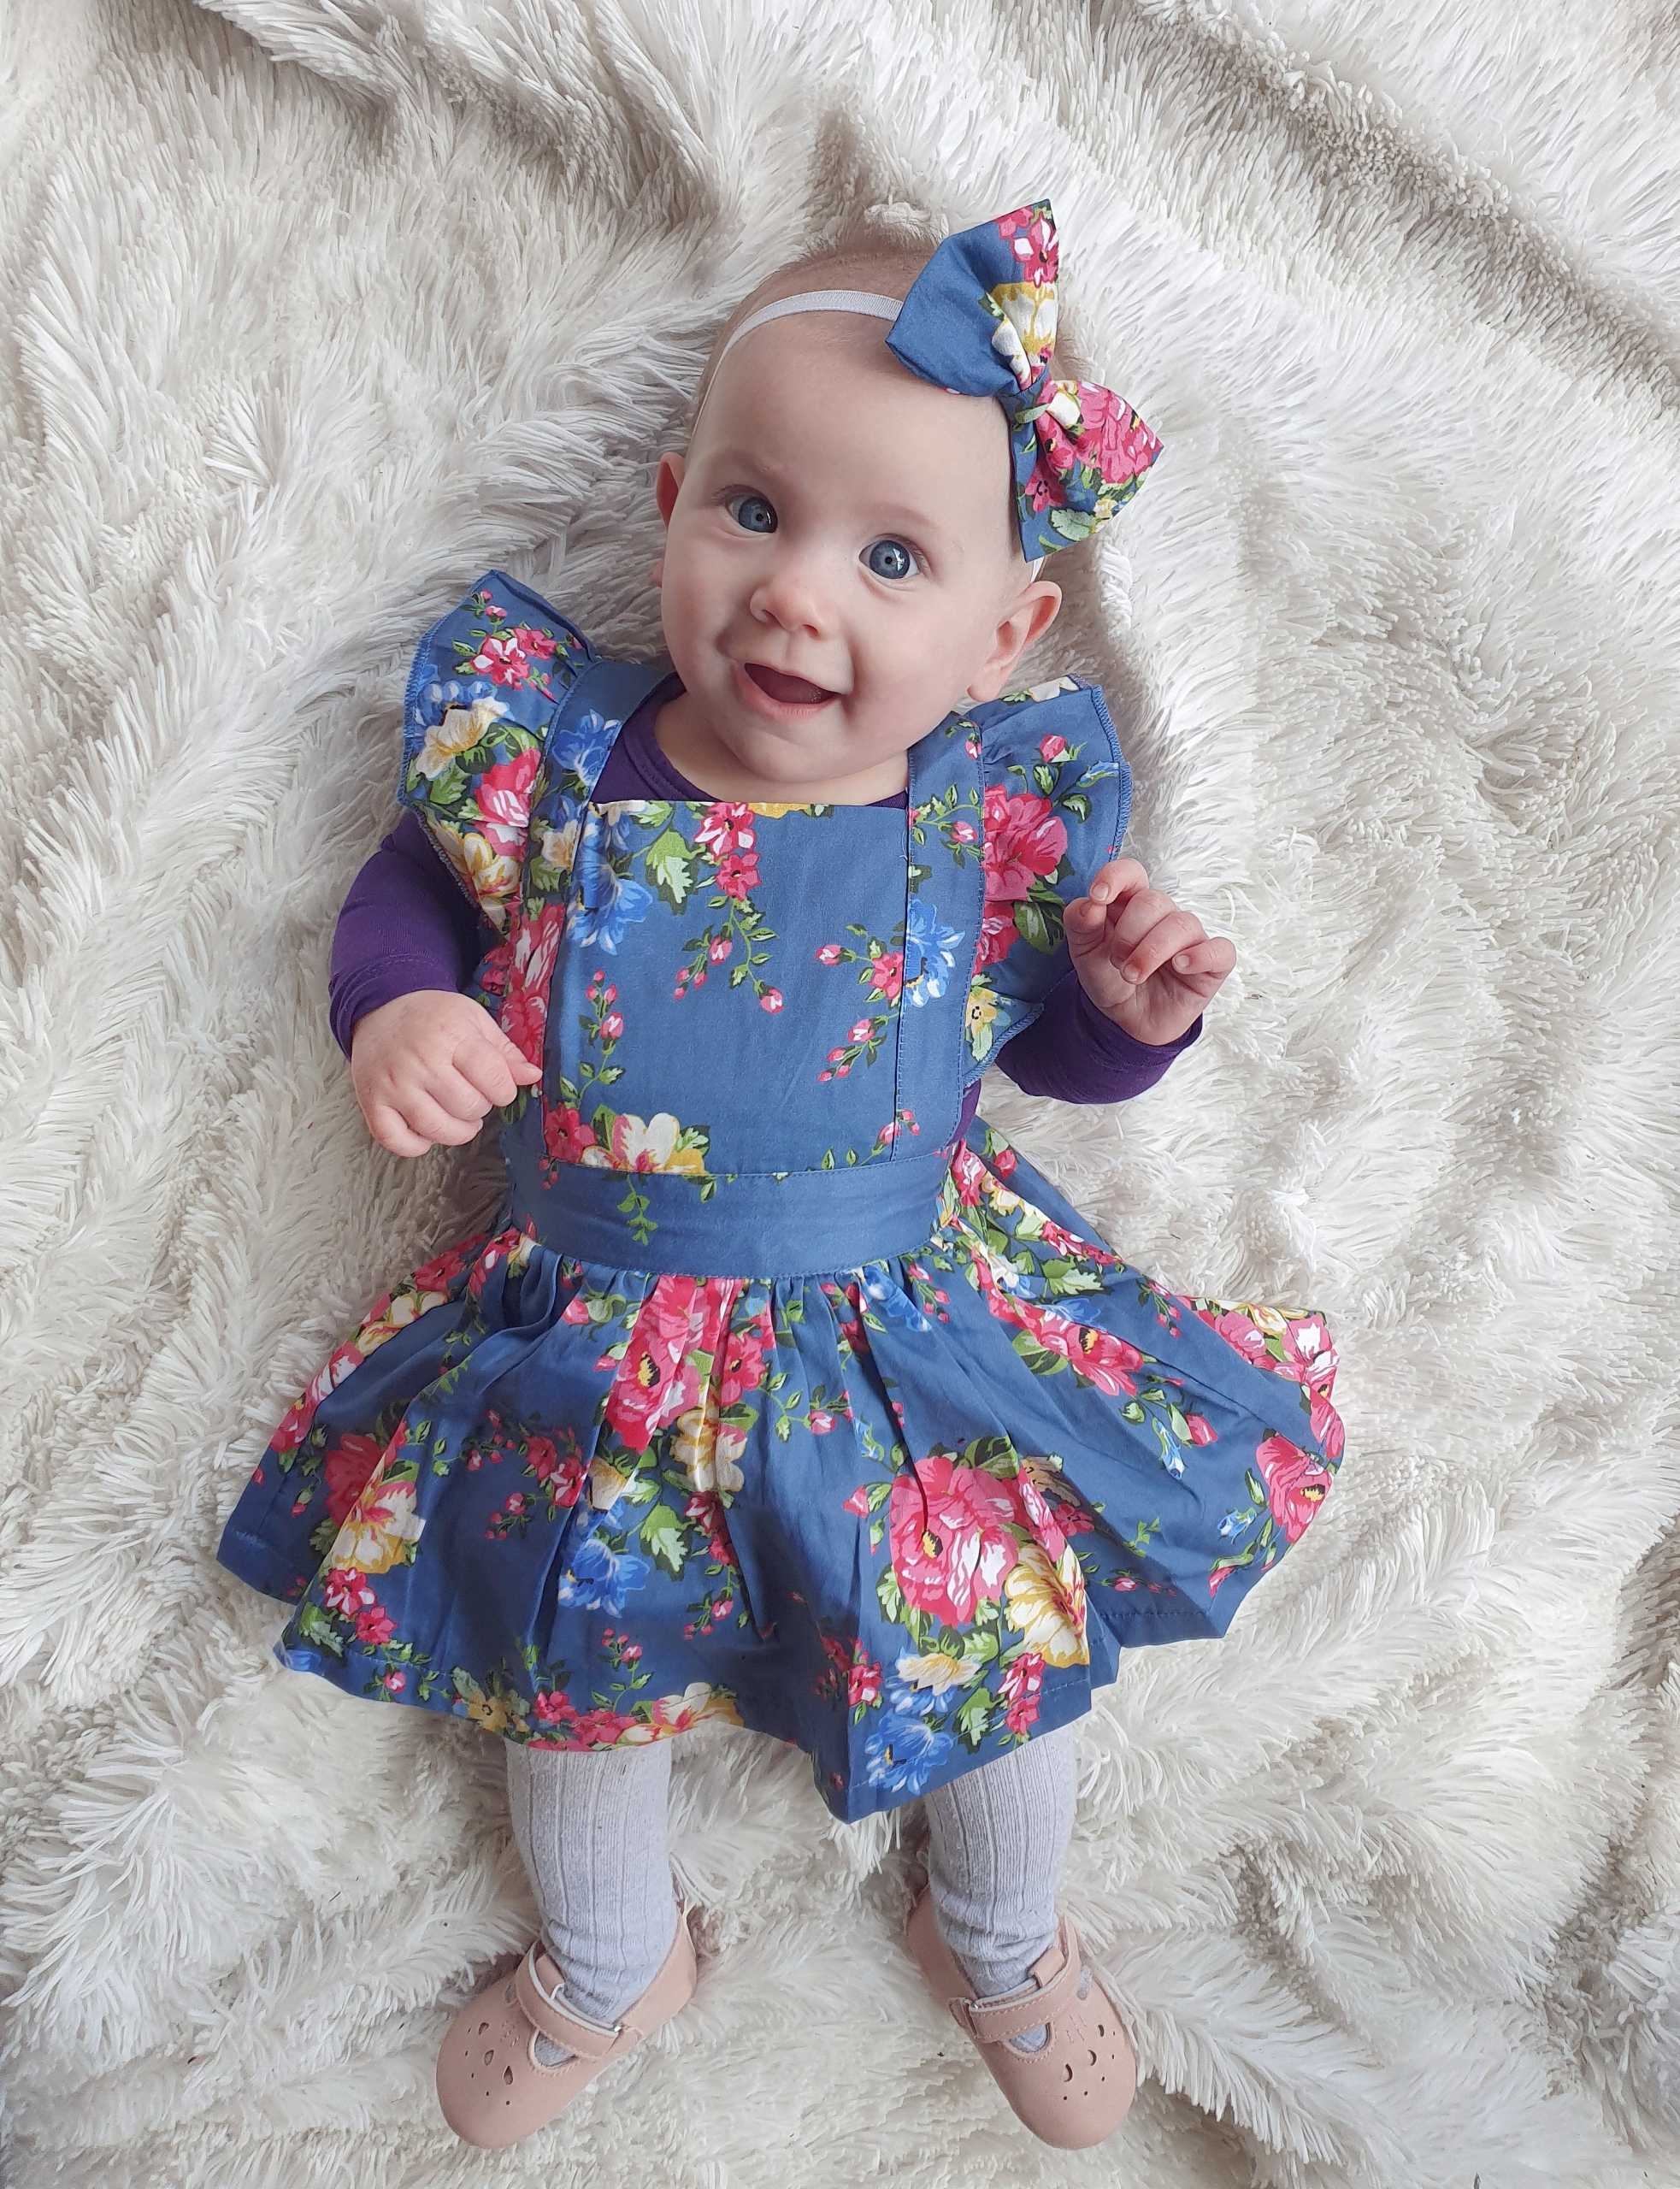 Toddler baby wearing flutter pinny